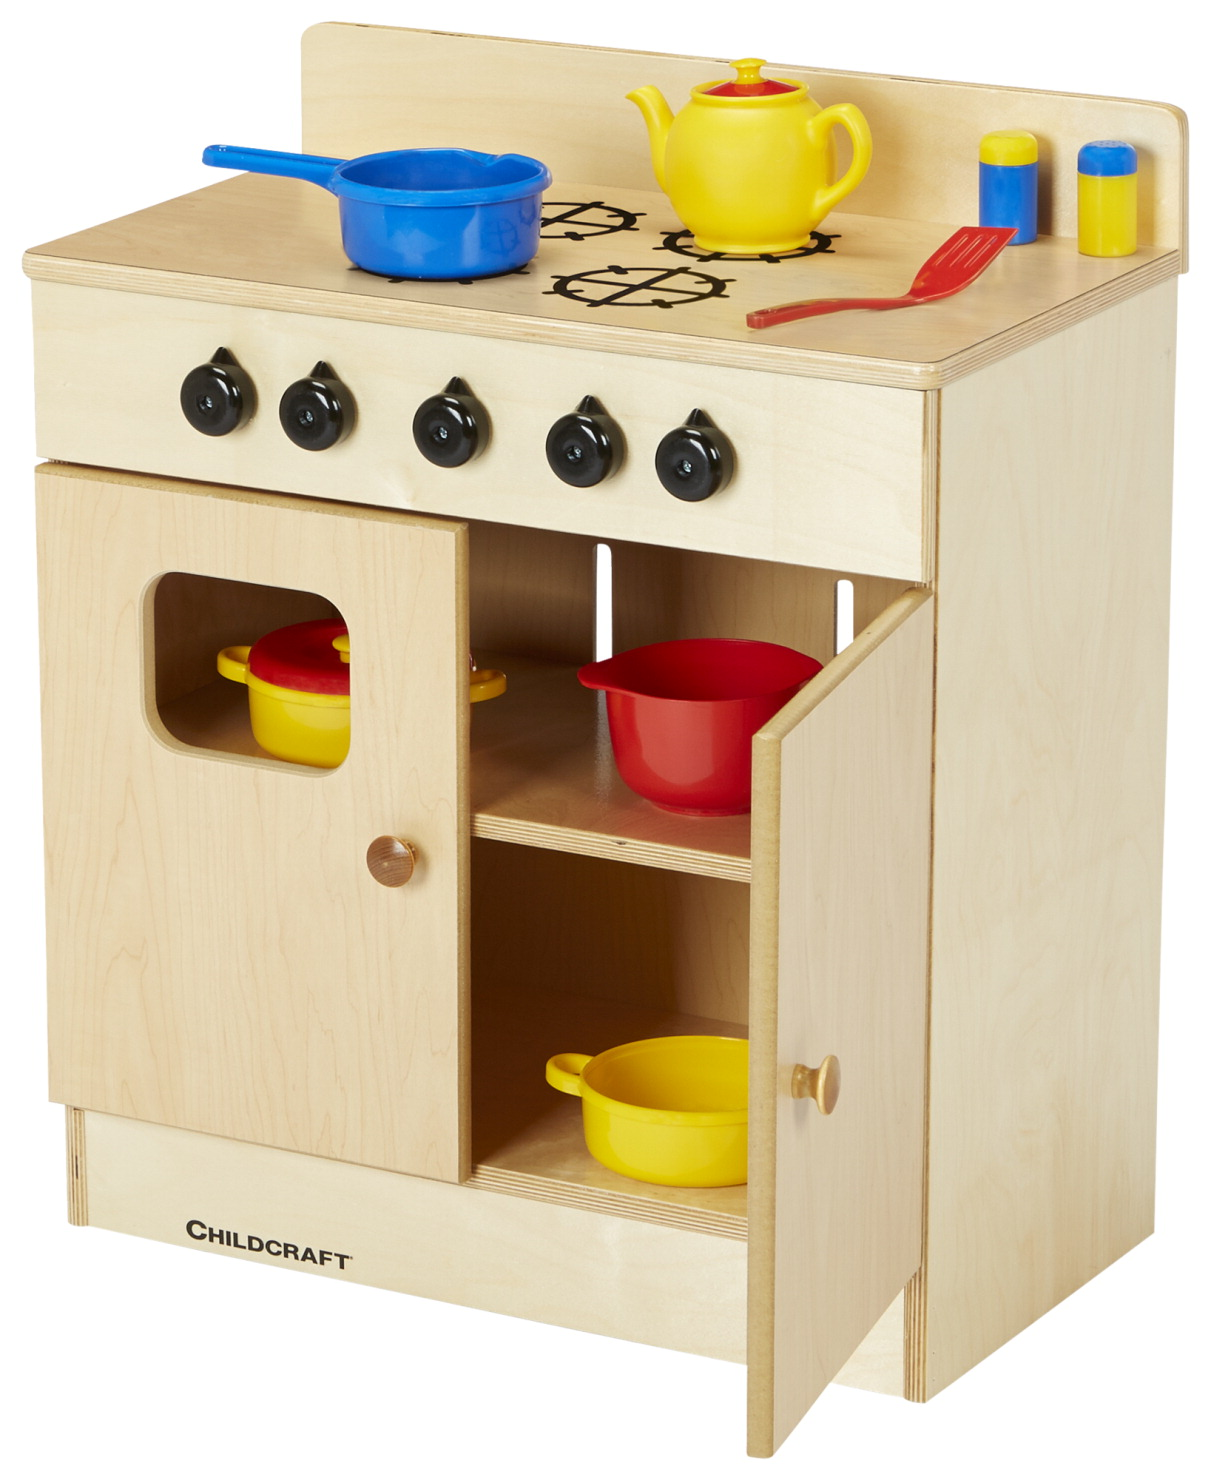 childcraft 4 piece play kitchen school specialty marketplace